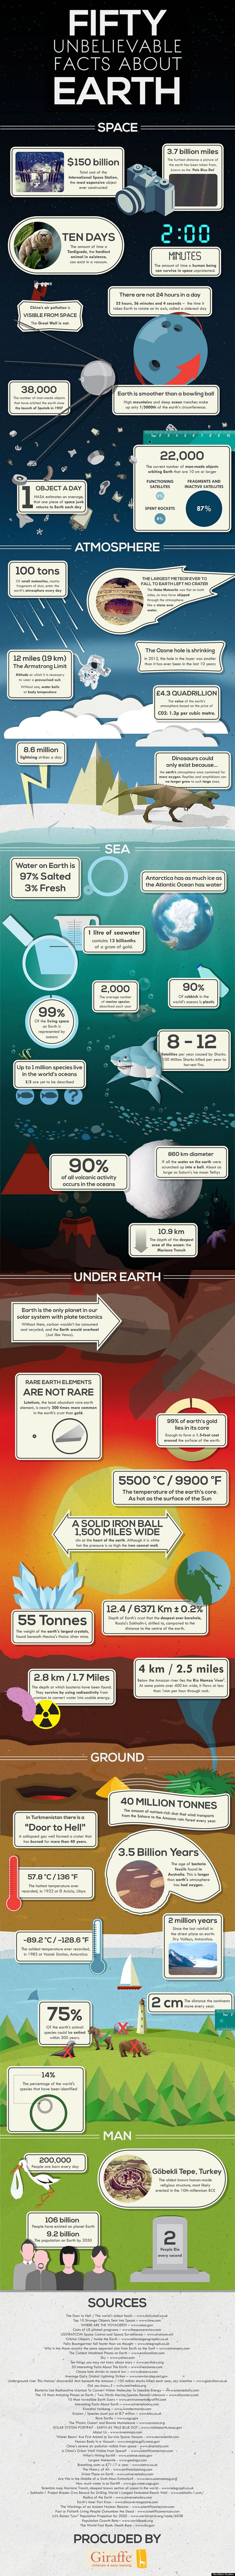 50 Interesting Facts About Our Planet Earth #Infographic